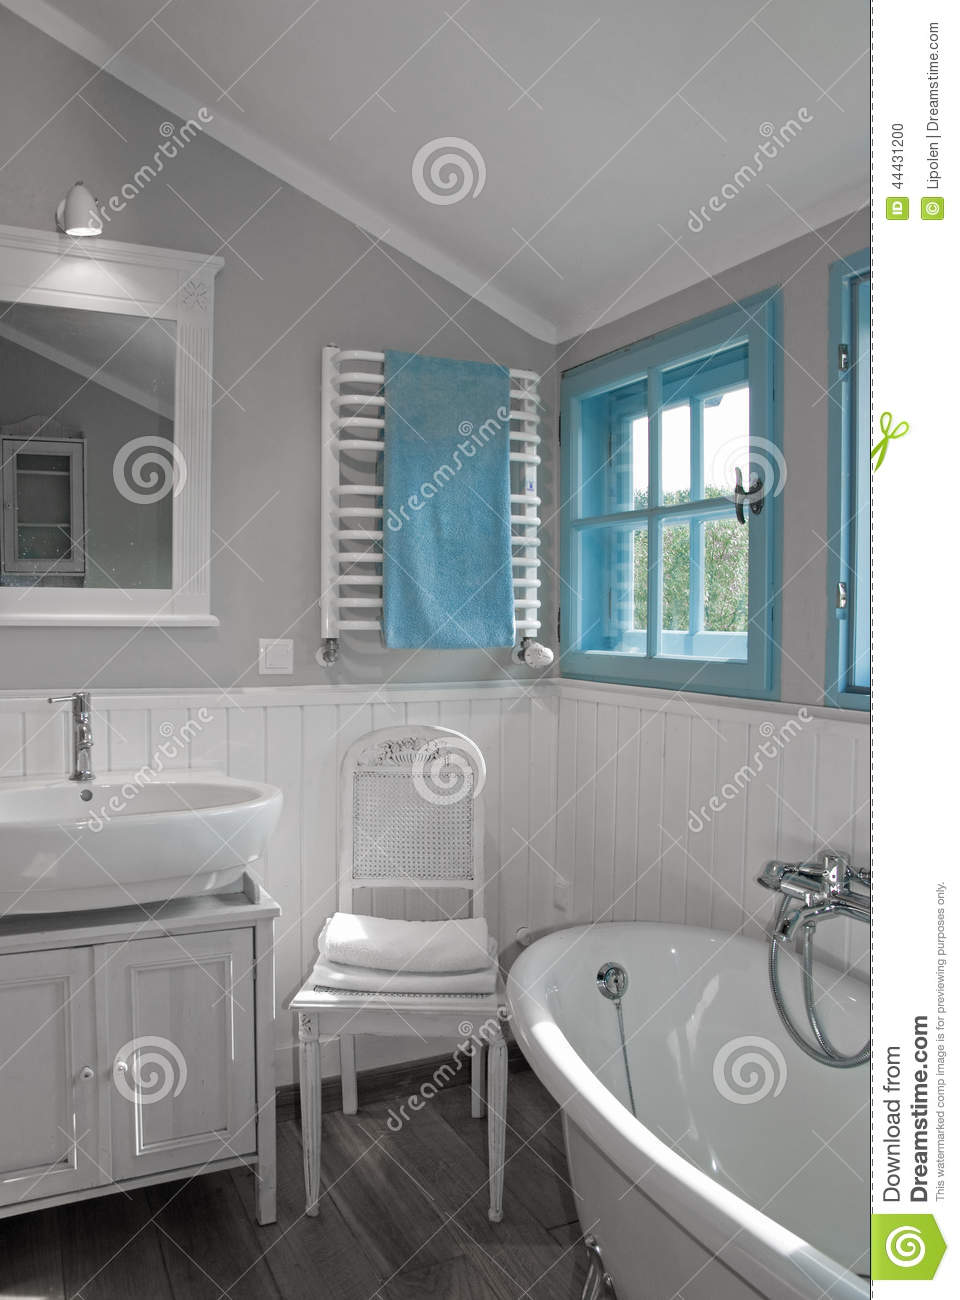 White Grey Rustic Bathroom With Window Stock Photo Image